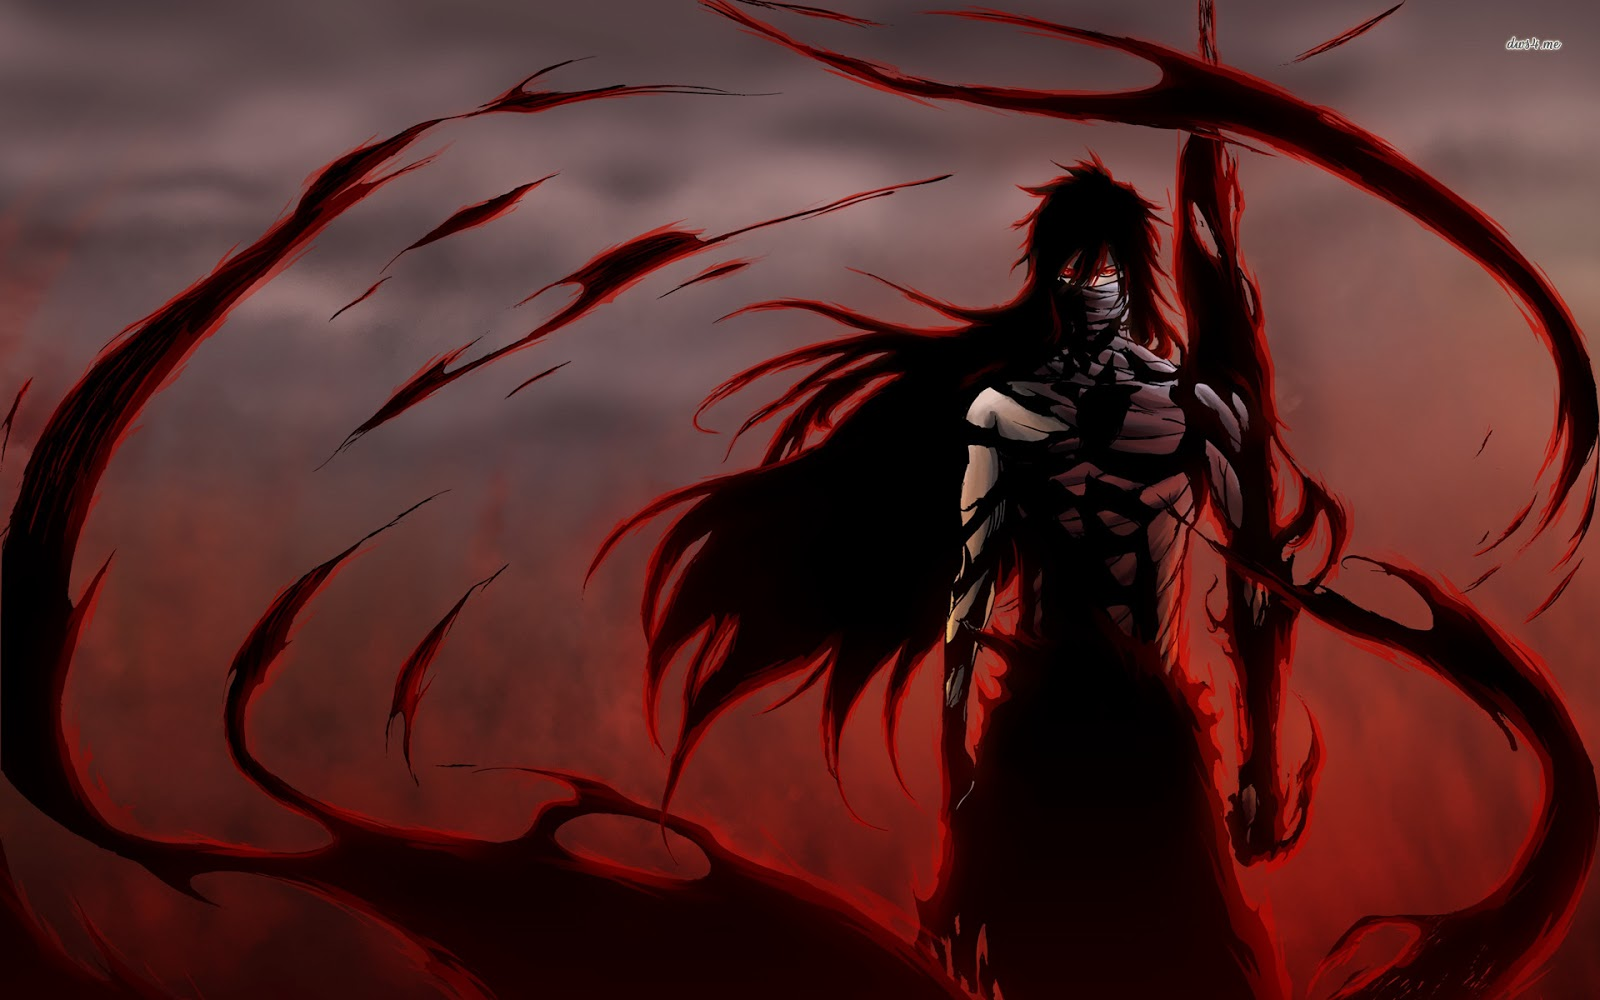 Bleach best wallpapers: Final Getsuga Tenshou